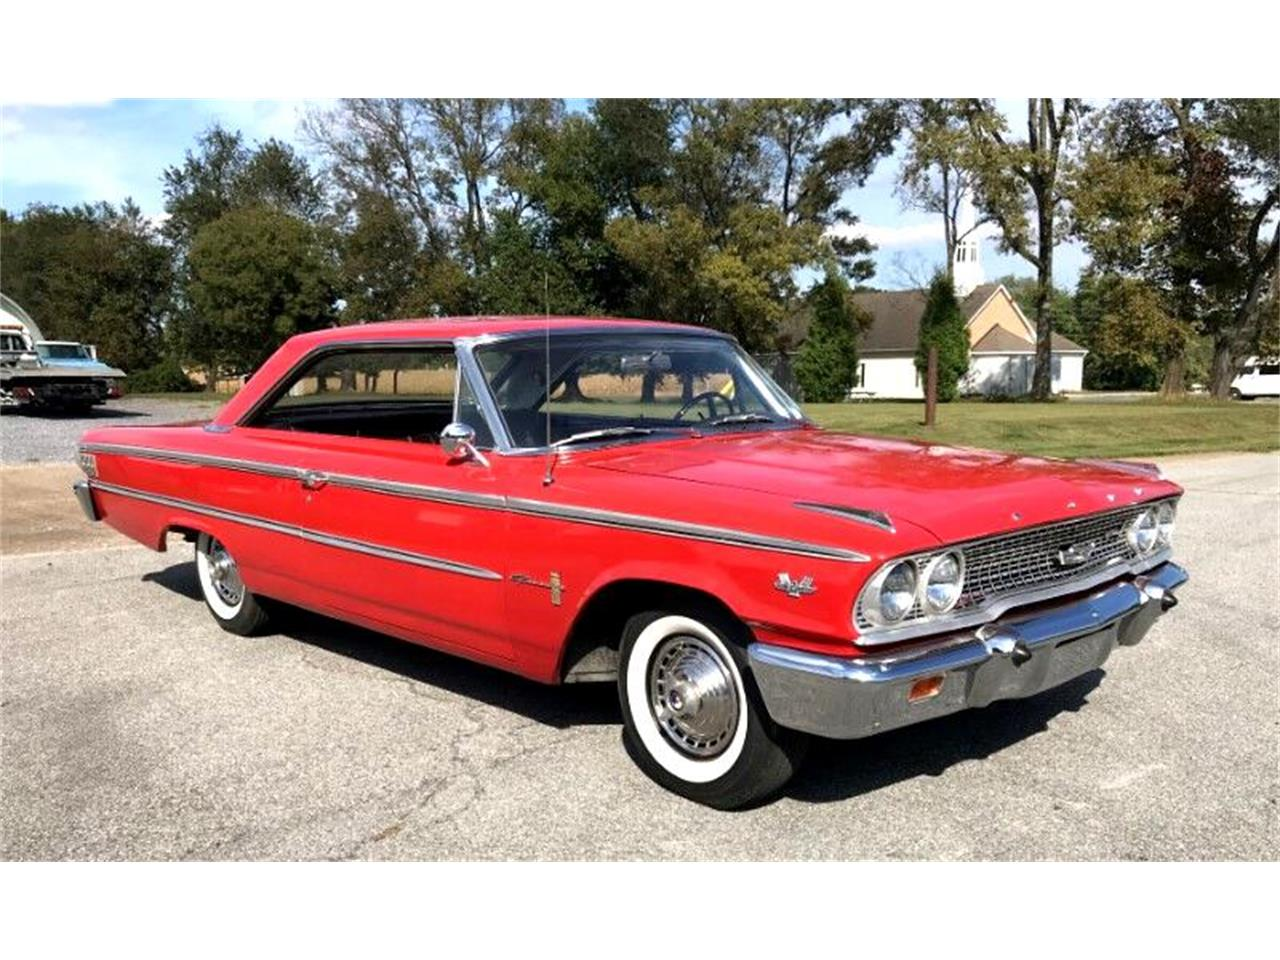 1963 Ford Galaxie 500 (CC-1270883) for sale in Harpers Ferry, West Virginia